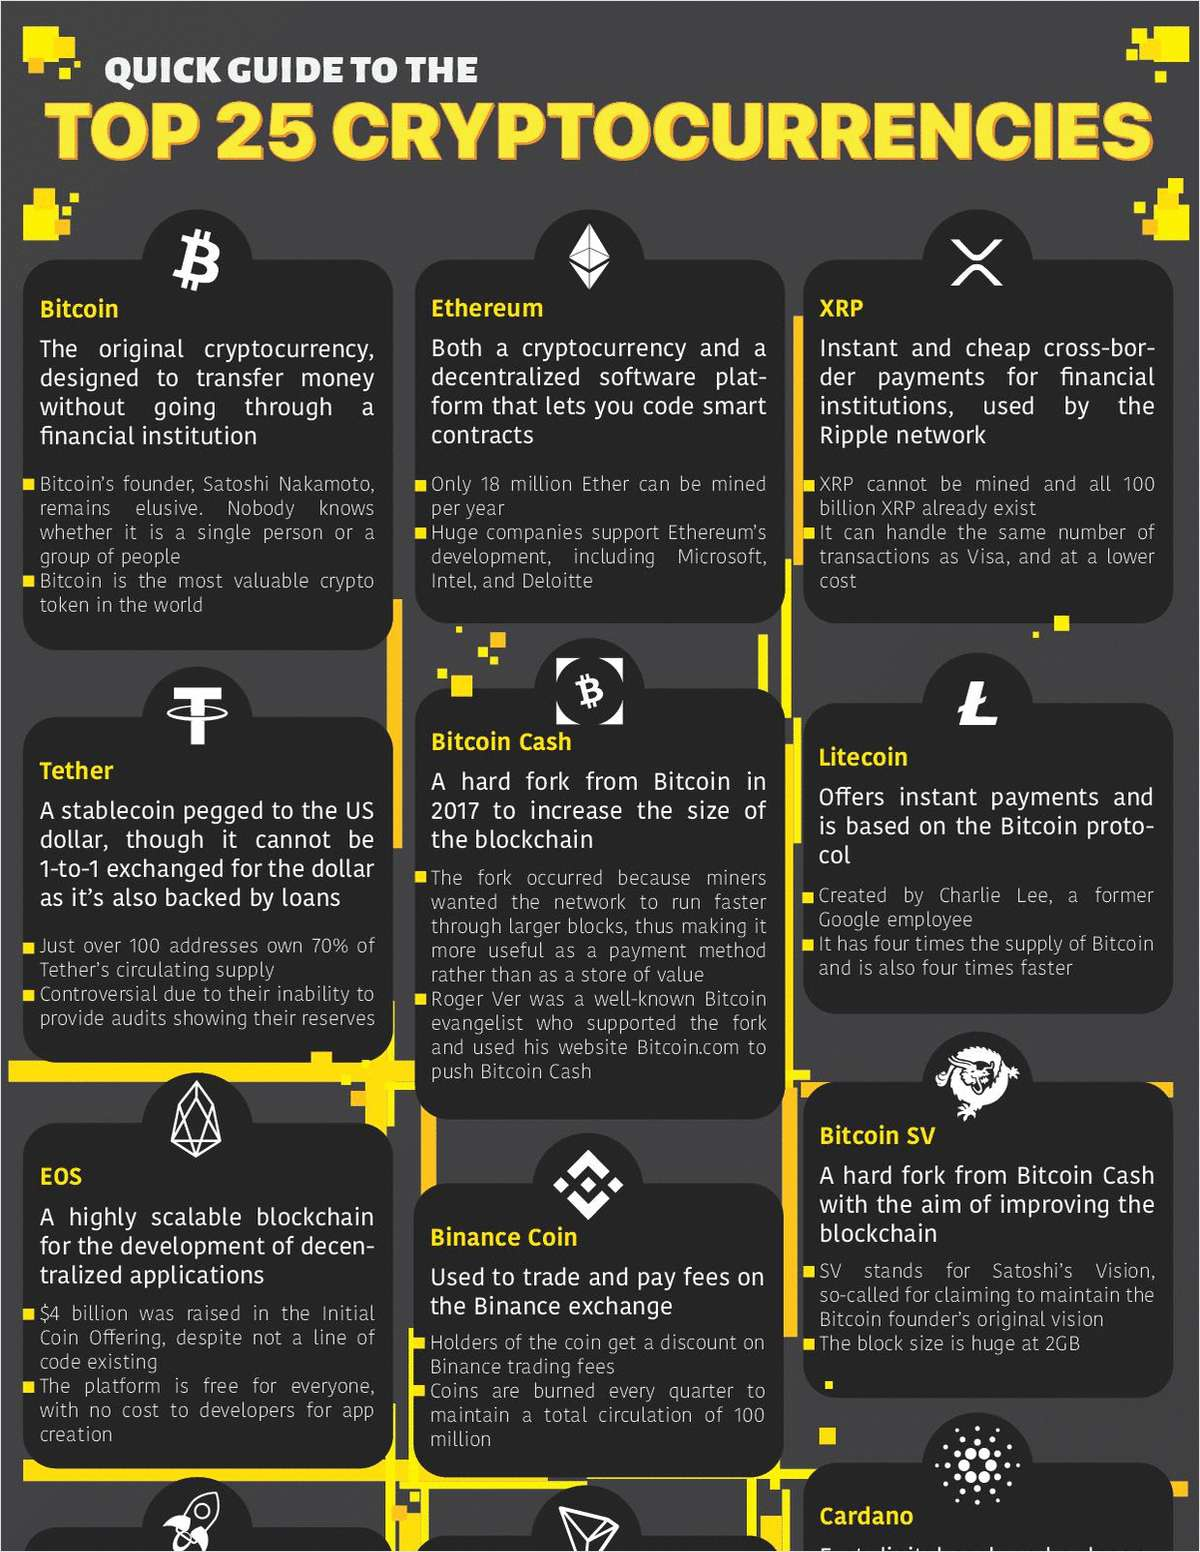 Quick Guide To The Top 25 Cryptocurrencies